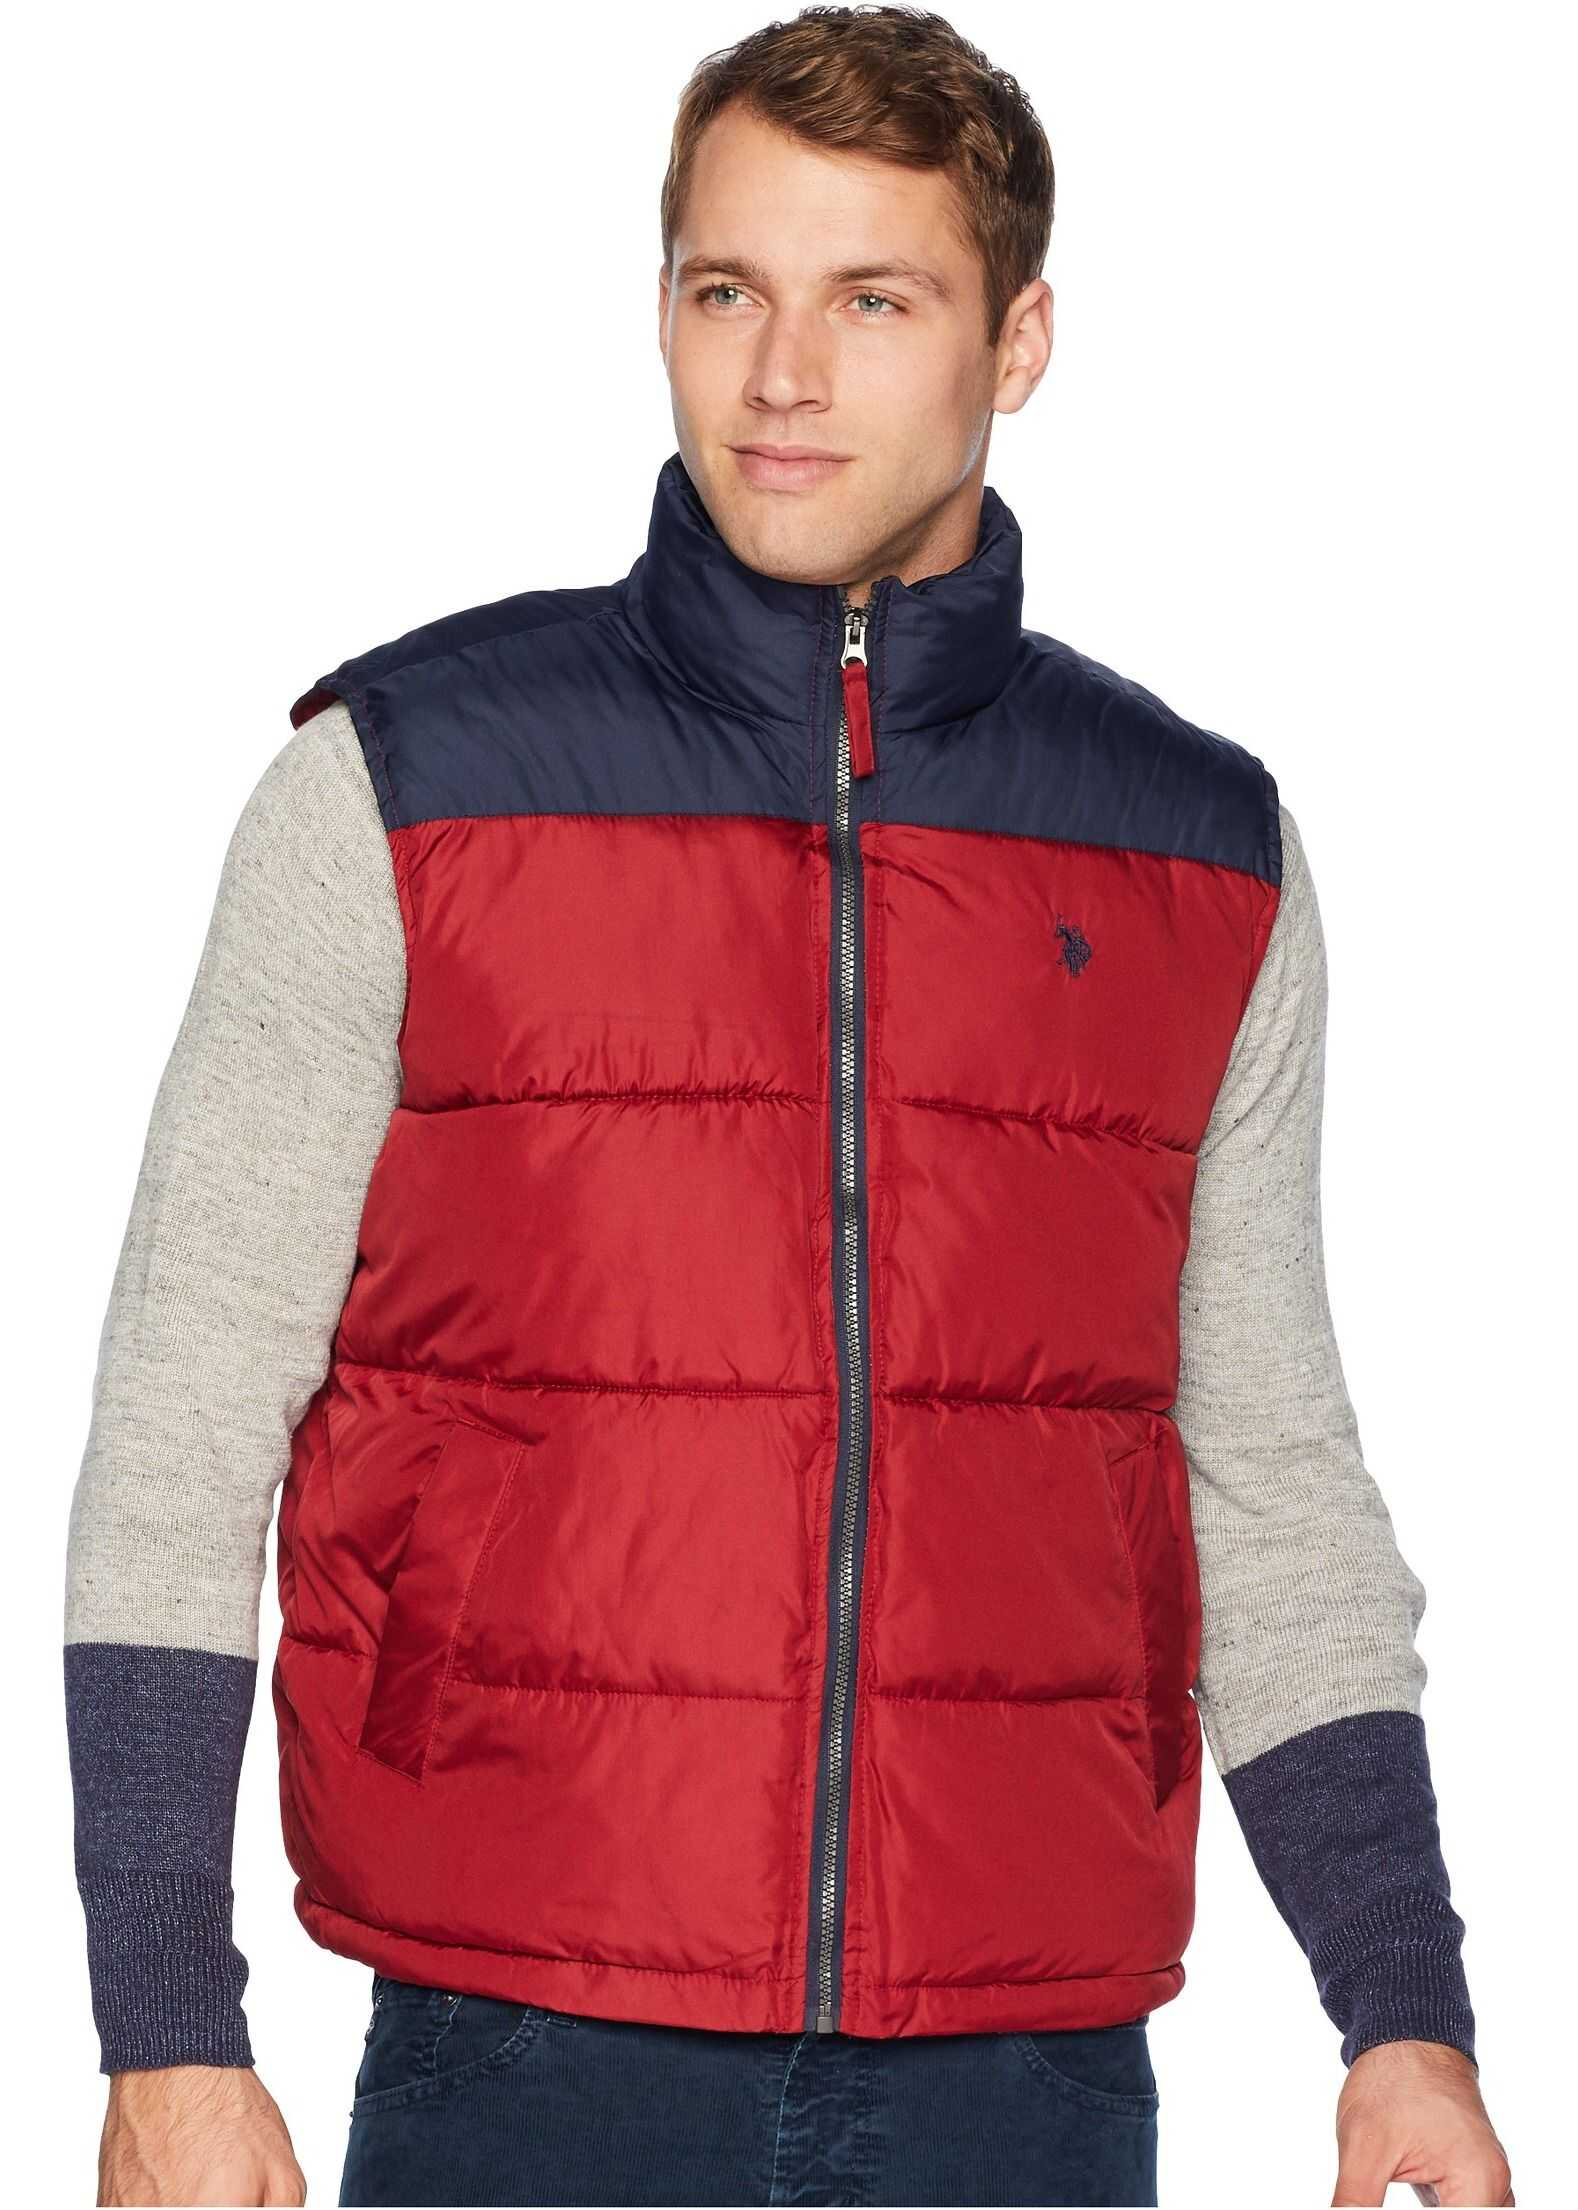 U.S. POLO ASSN. Color Block Vest University Red